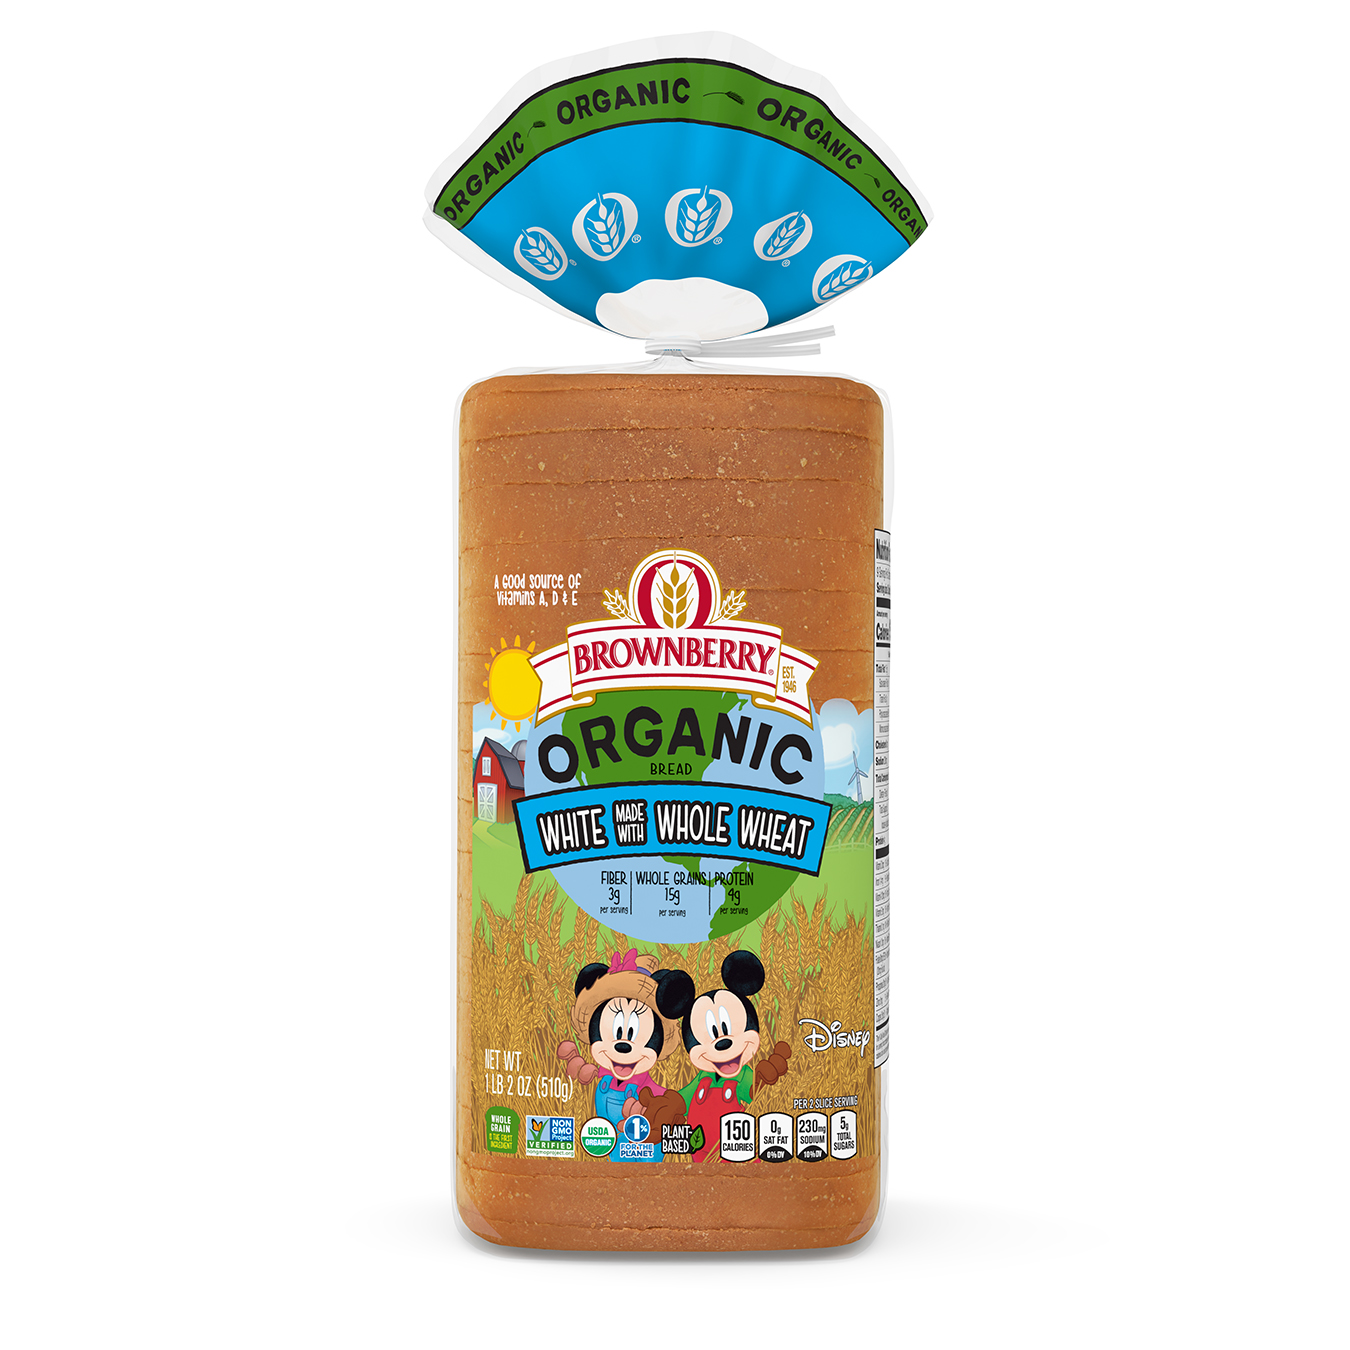 Brownberry Organic for Kids White made with Whole Wheat 18oz Packaging